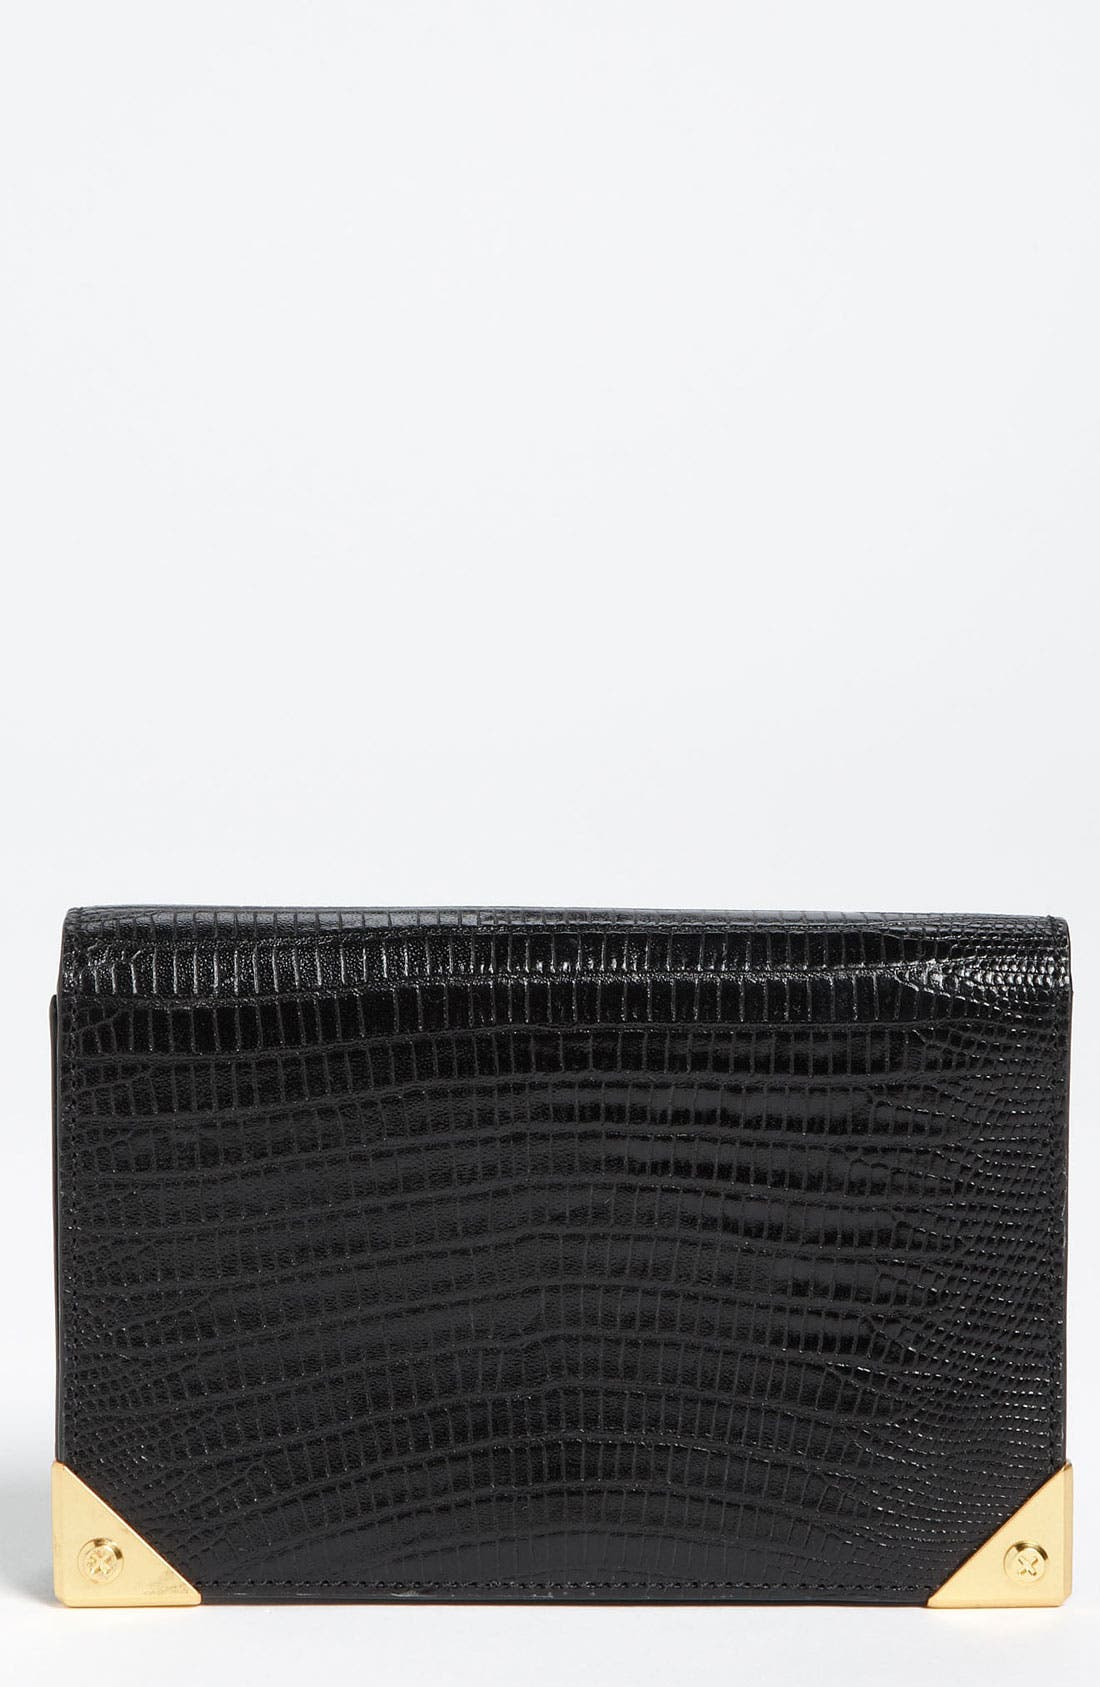 Alternate Image 1 Selected - Alexander Wang 'Prisma' Leather Coin Purse